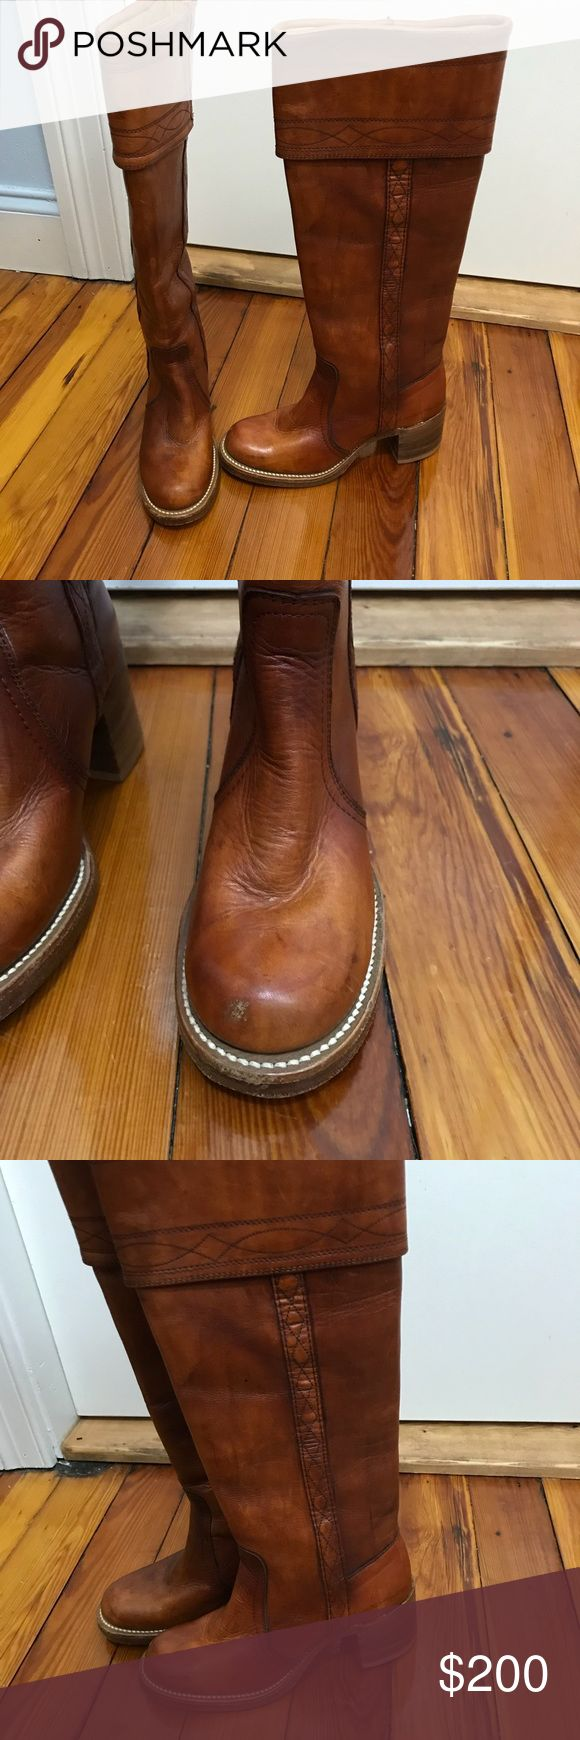 Frye vintage braided riding boots cognac brown 5 Vintage super thick leather Frye boots. These are the campus riding boot style. Black tag vintage Frye from the 1960's. Knee high. Good vintage condition and could use a polish. True to size 5. Frye Shoes Heeled Boots